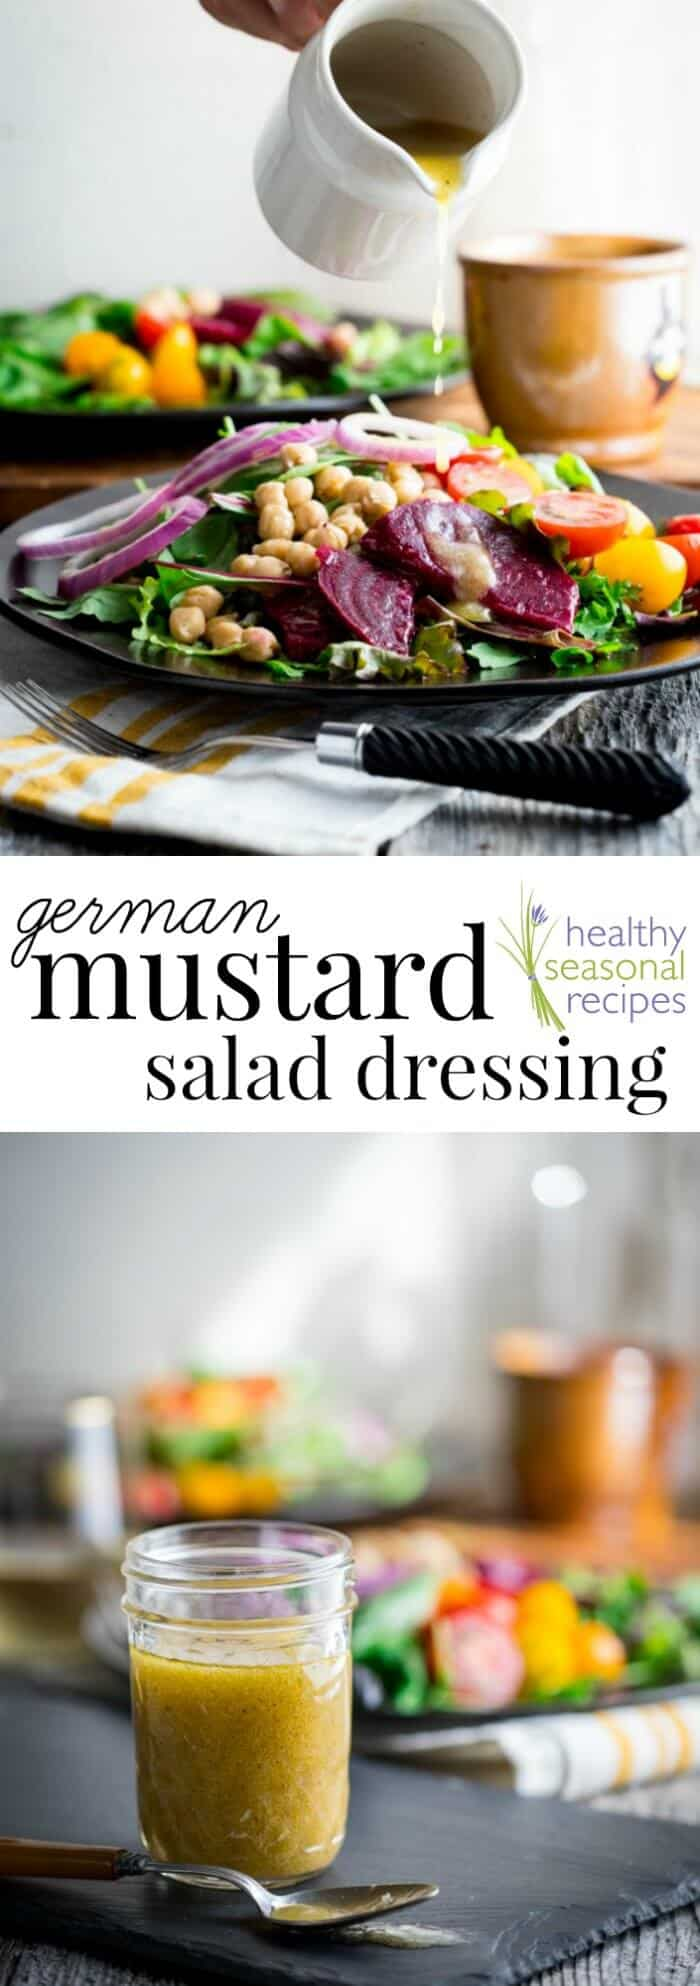 Are you searching for a healthy sugar-free salad dressing? Then you will love this Home-made German Mustard Salad Dressing! #mustarddressing #sugarfree #saladdressing #dressing #vinaigrette #healthy #lowcarb